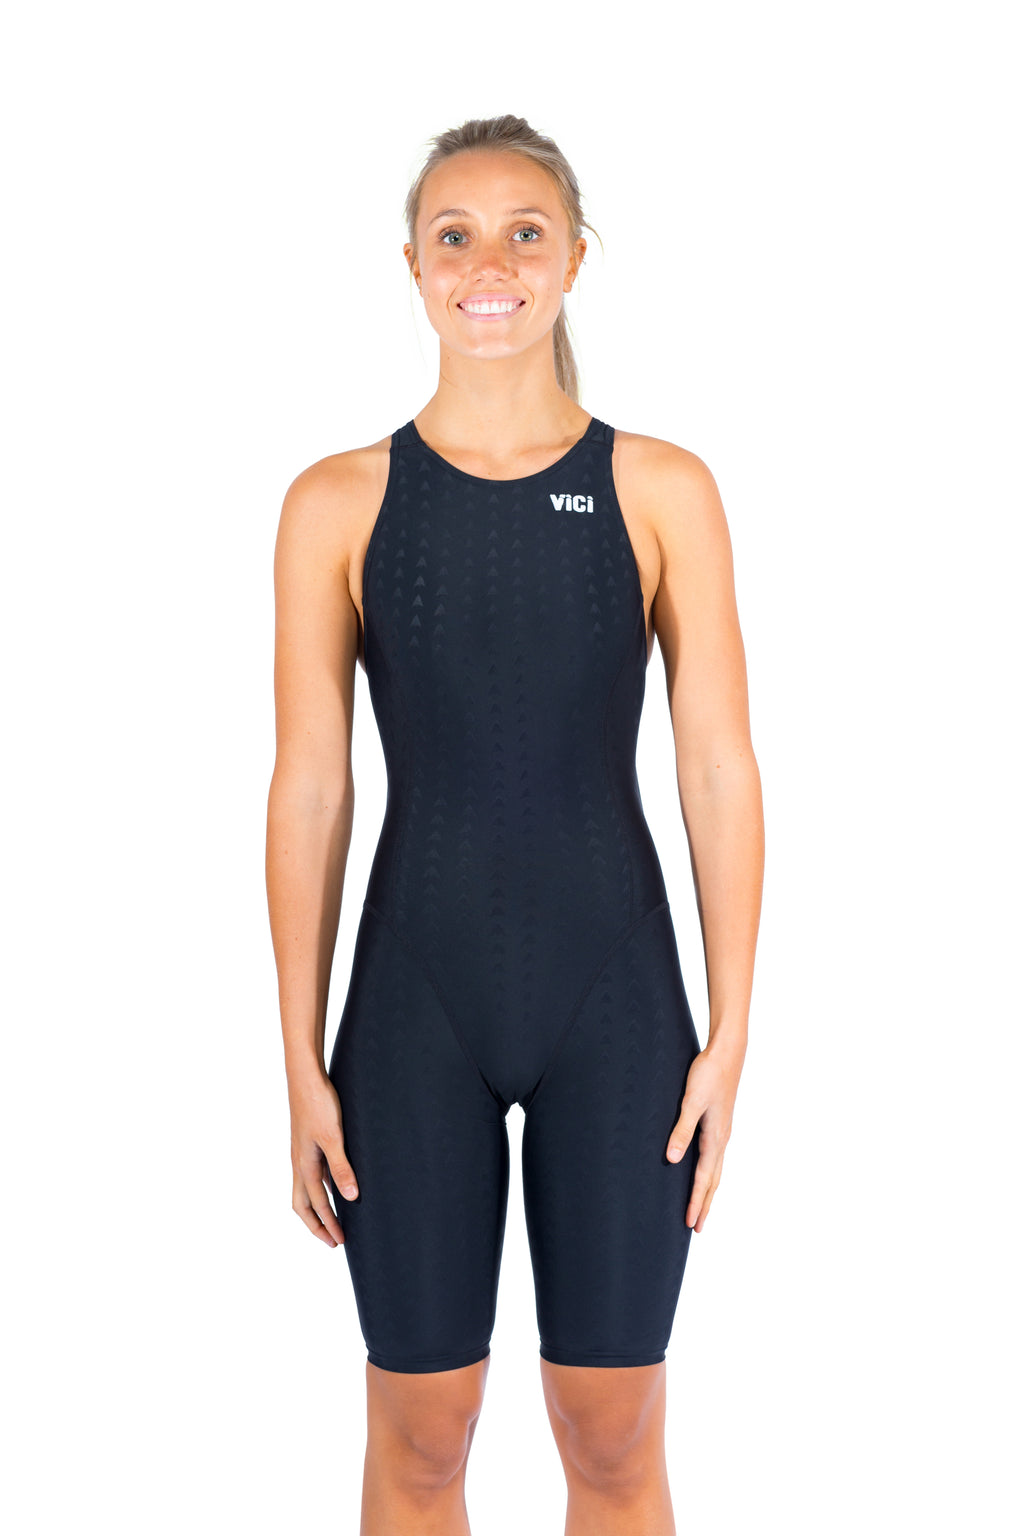 Race Suit – Black